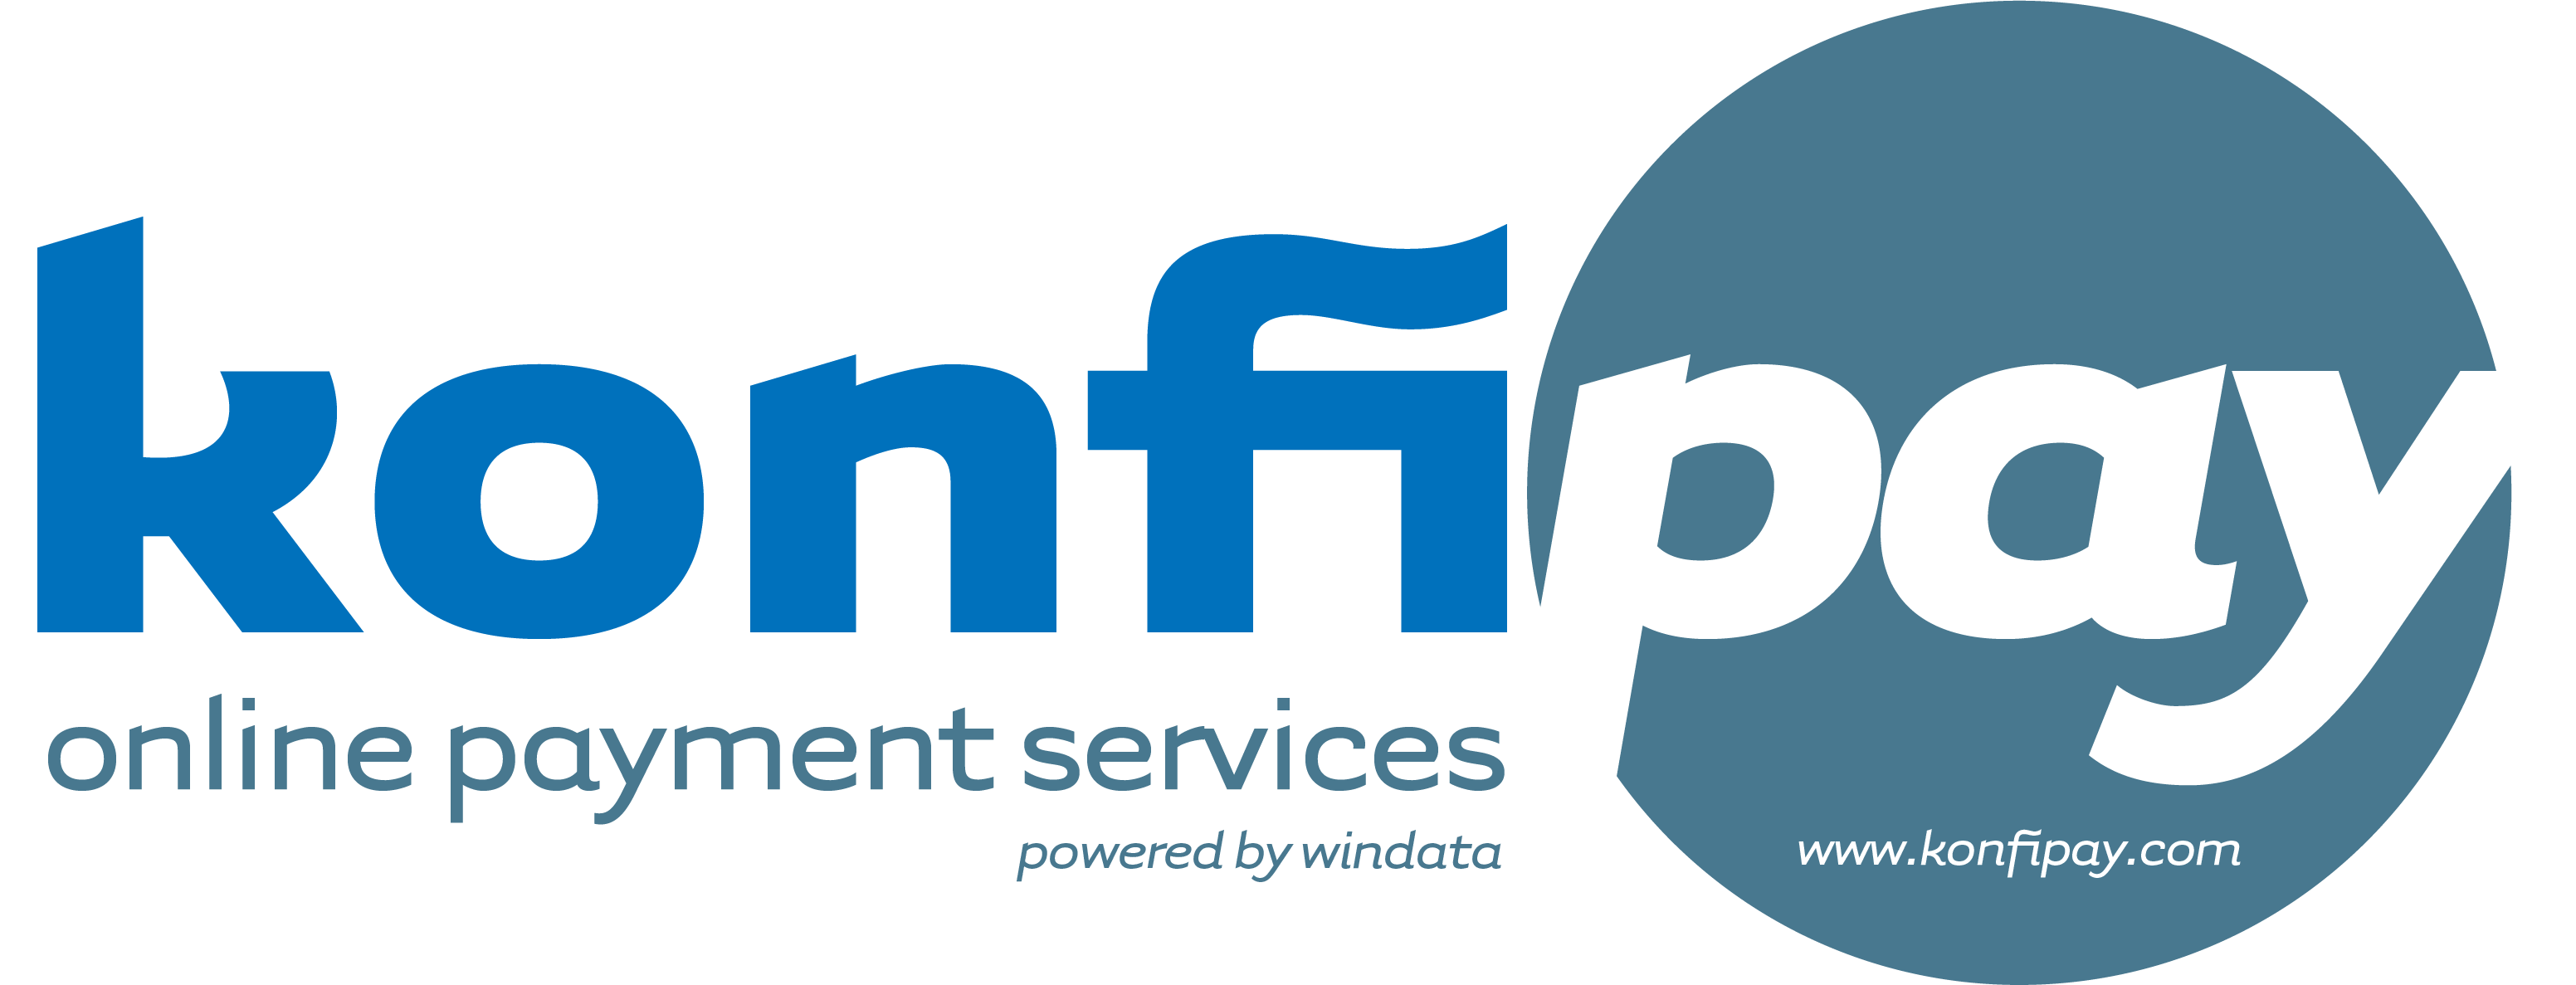 konfipay - powered by windata GmbH & Co.KG